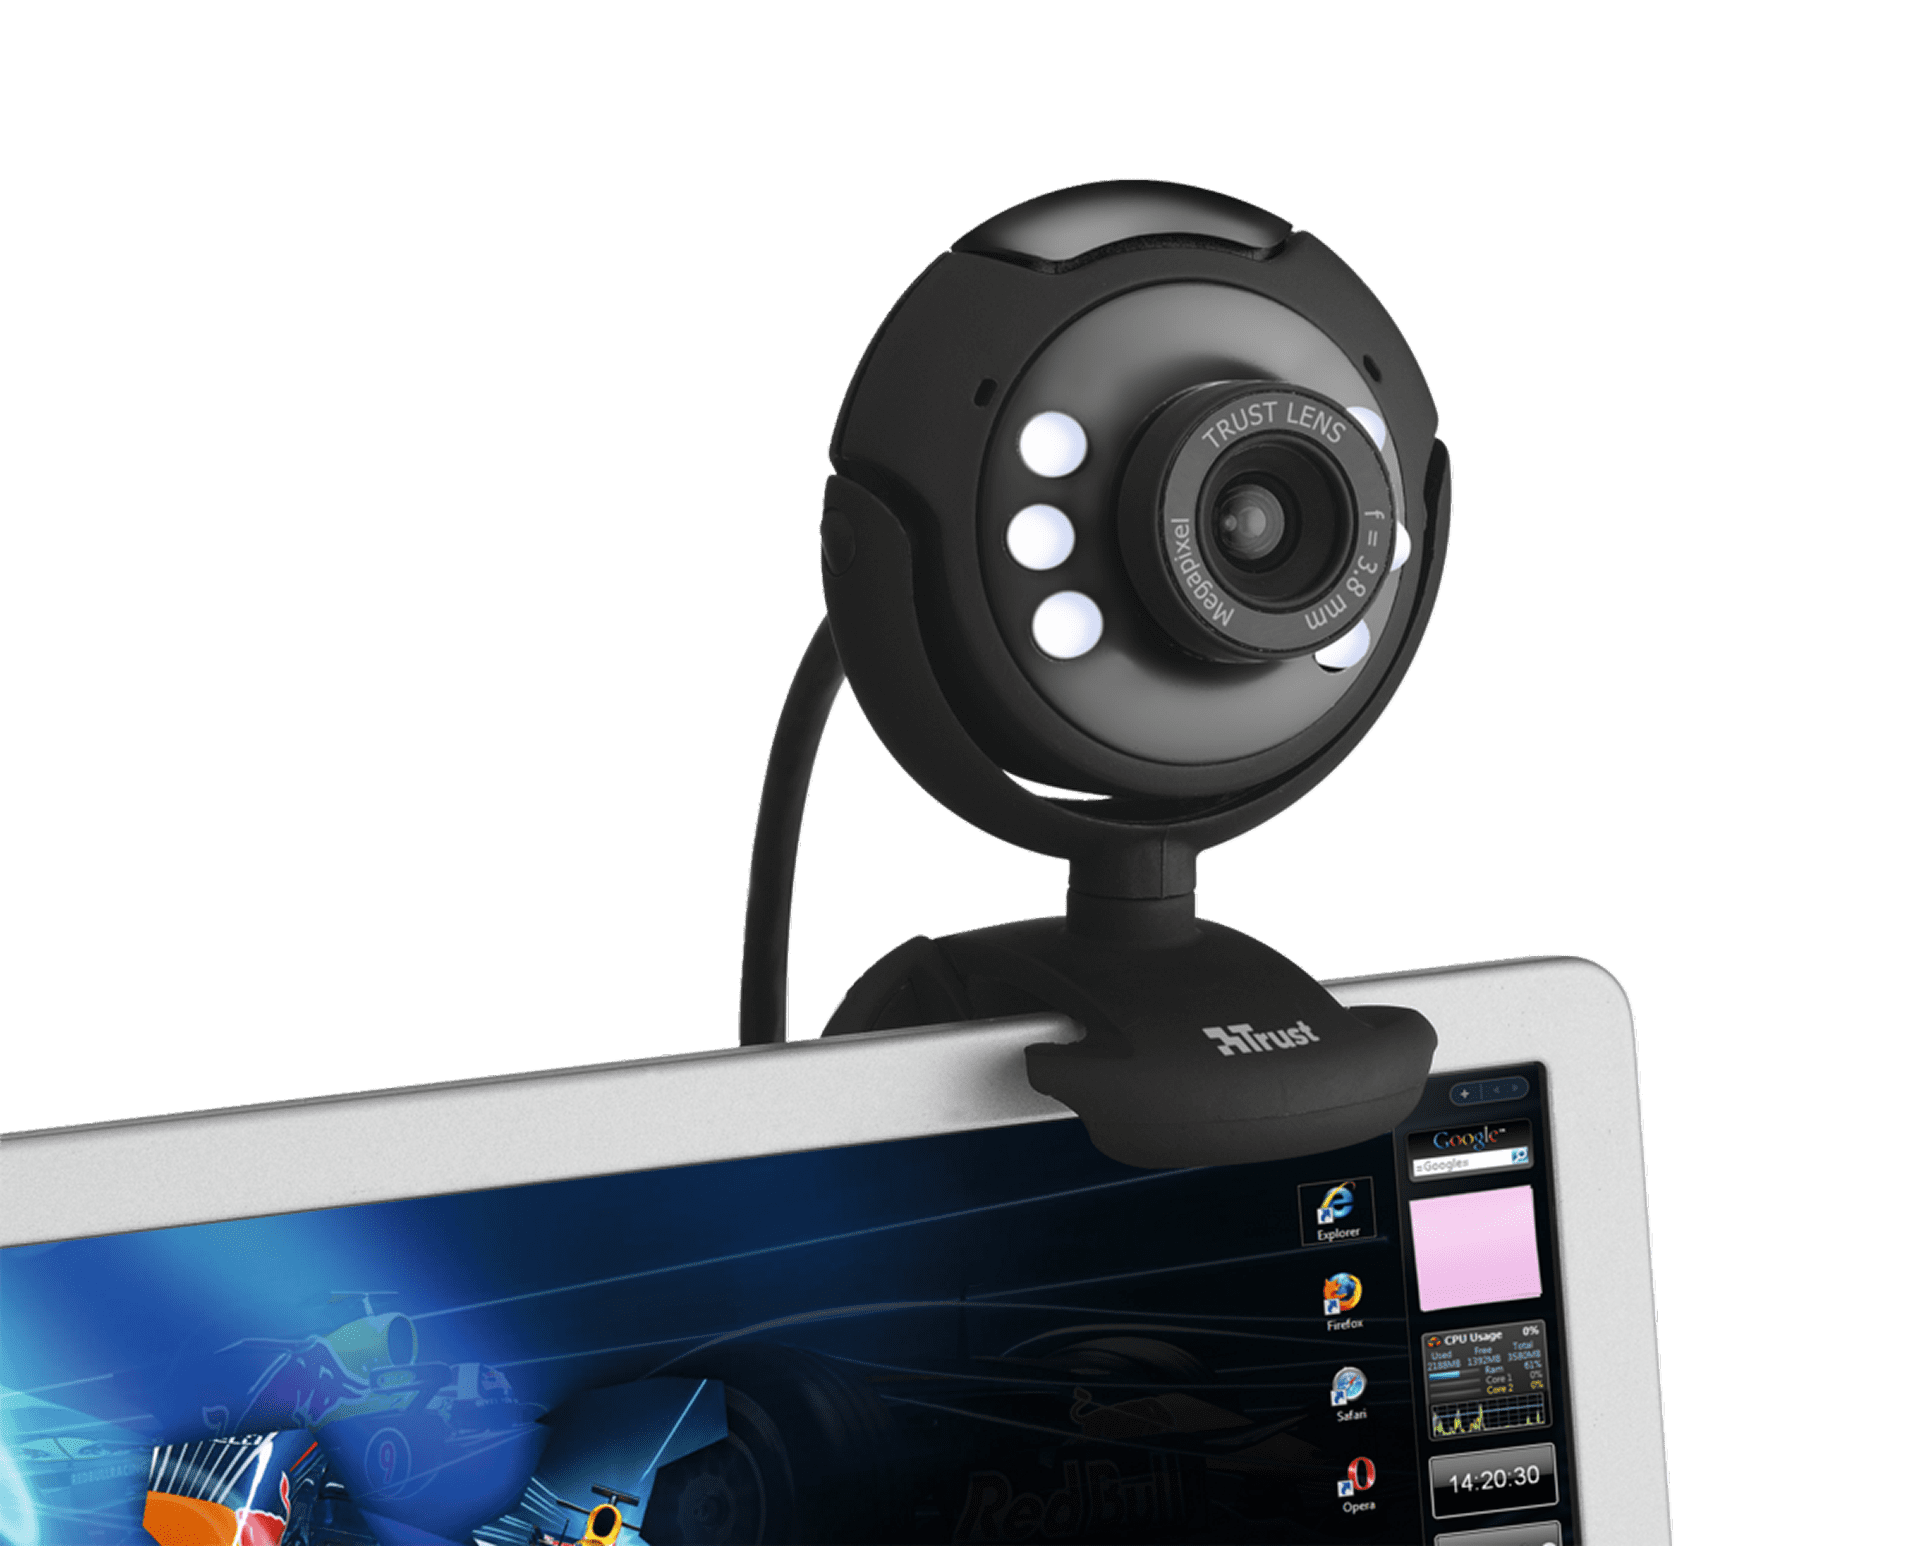 Best Android Camera Apps 2018 - Take Better Pictures on Take pictures on web camera download